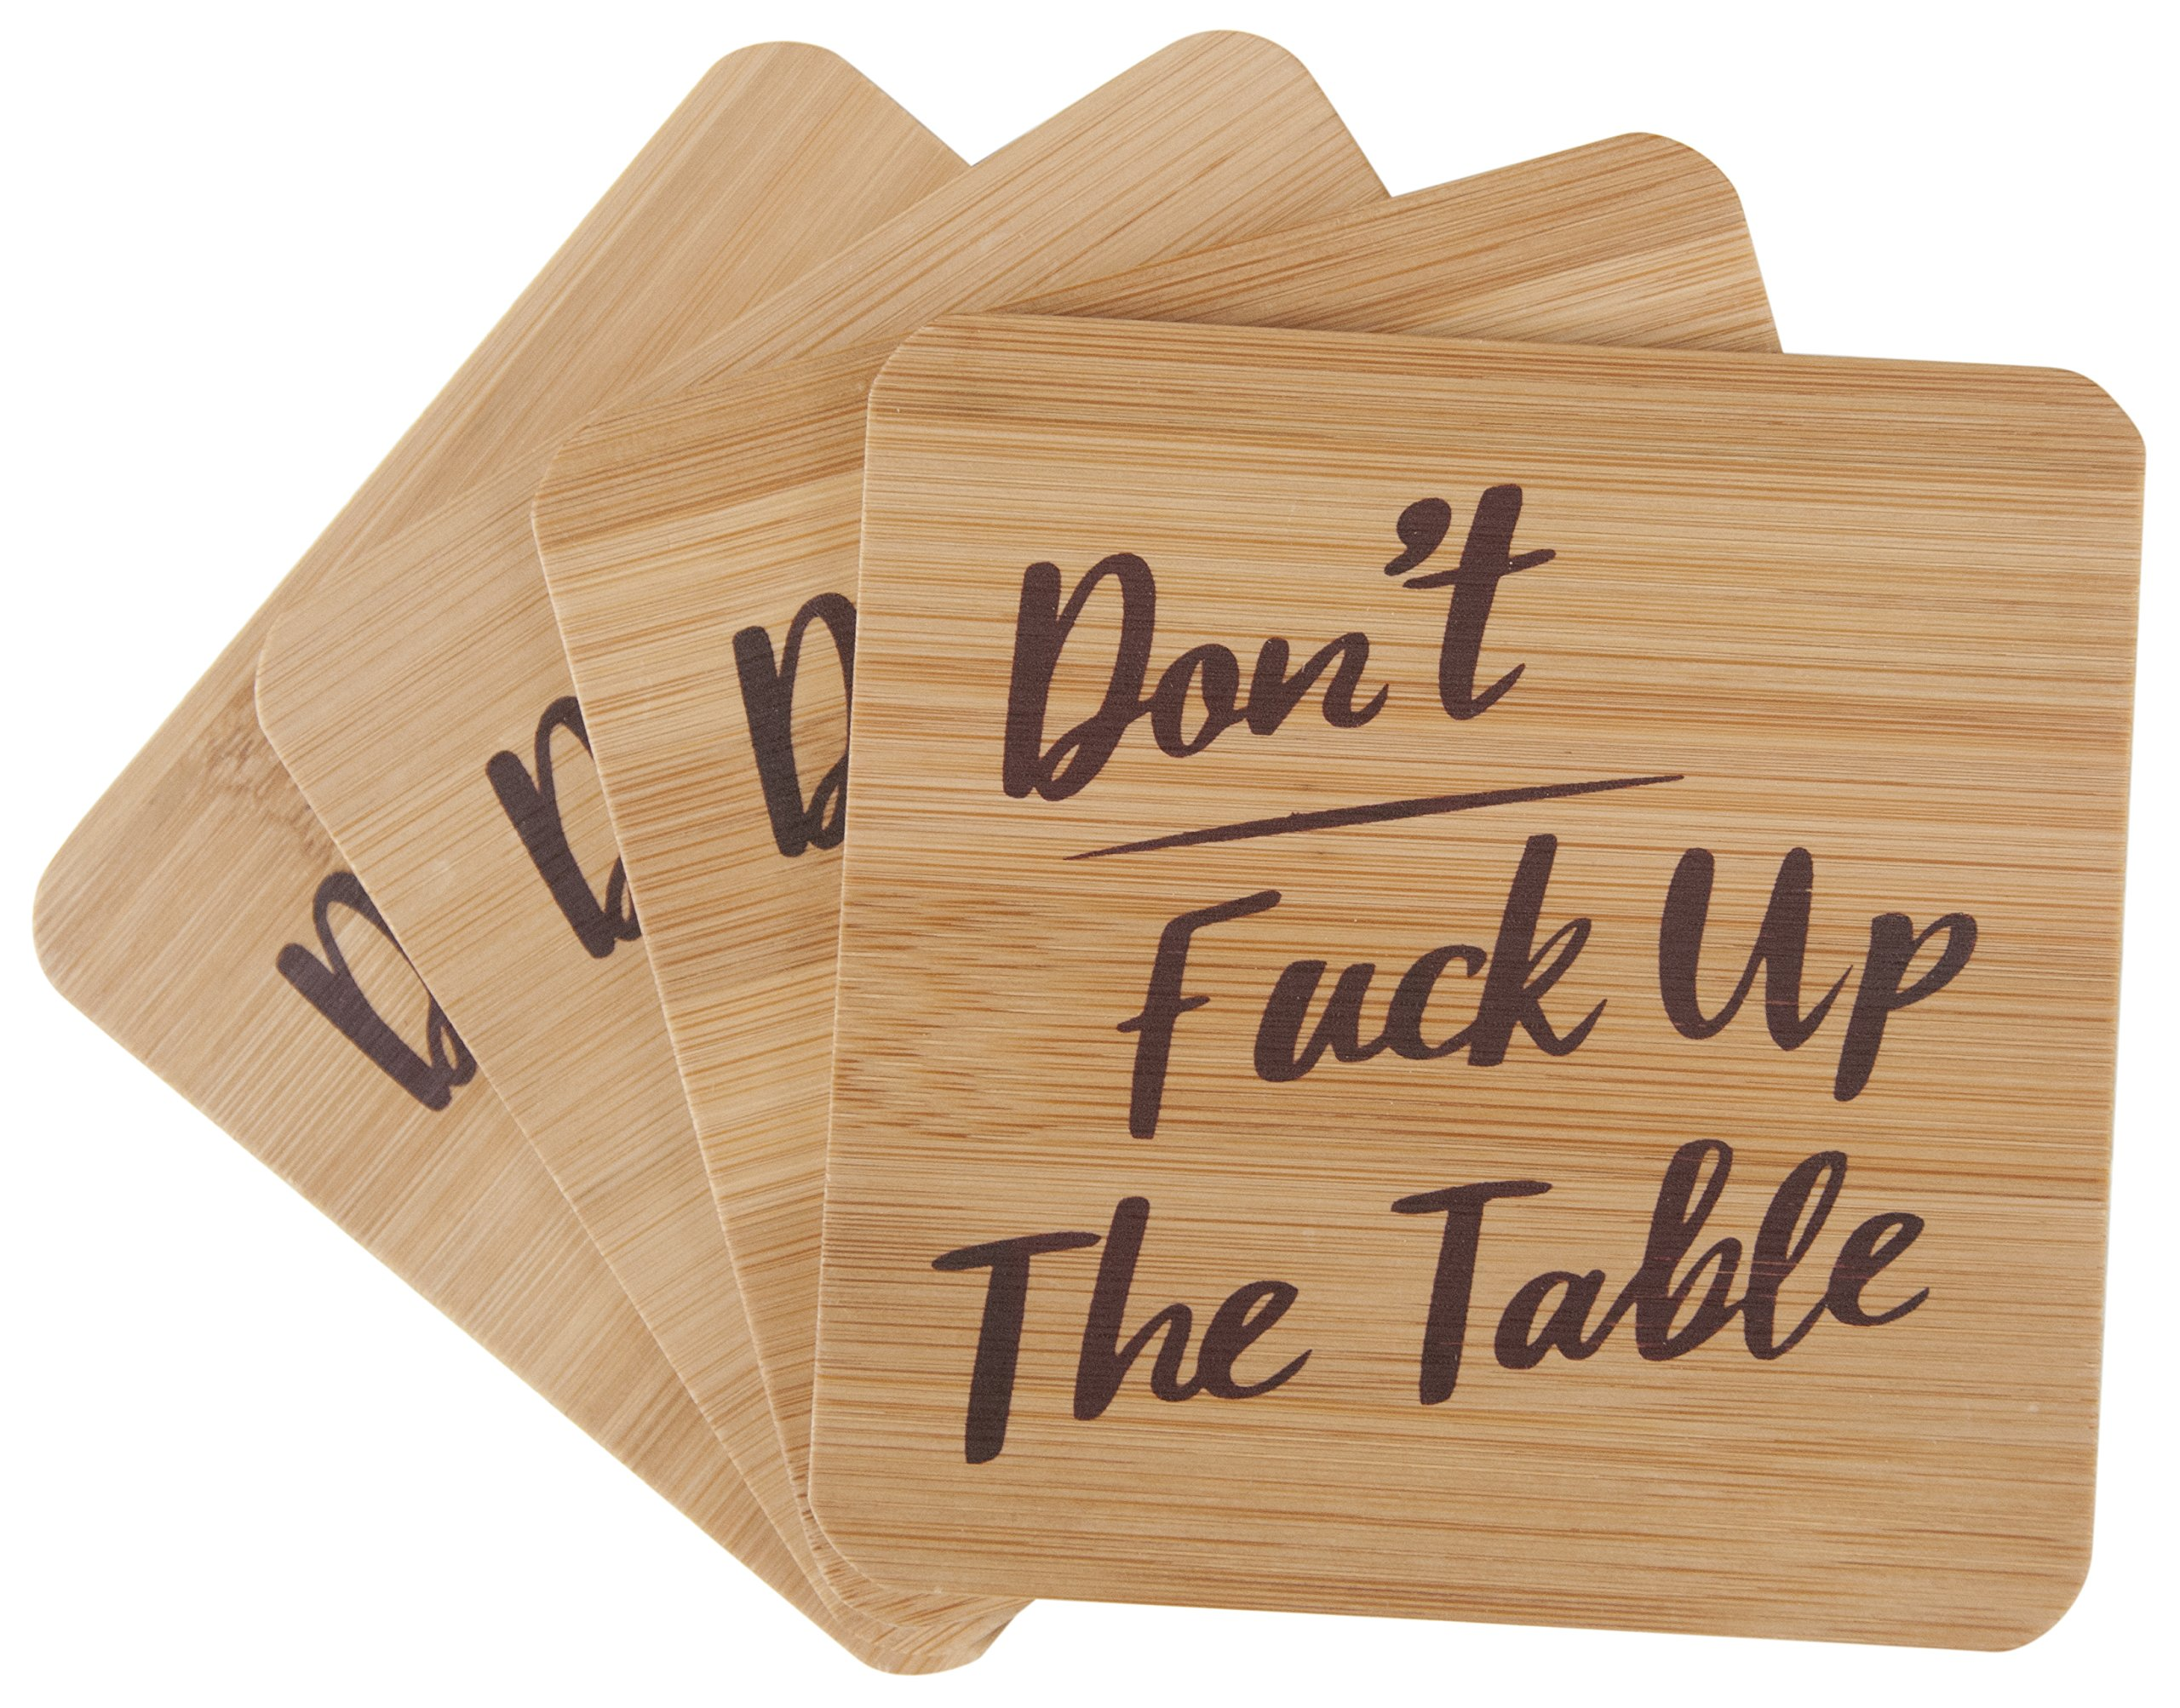 Don't Fuck Up The Table Bamboo Drink Coasters | Set of 4 with Holder | Funny Housewarming Gift by Bonnejoy